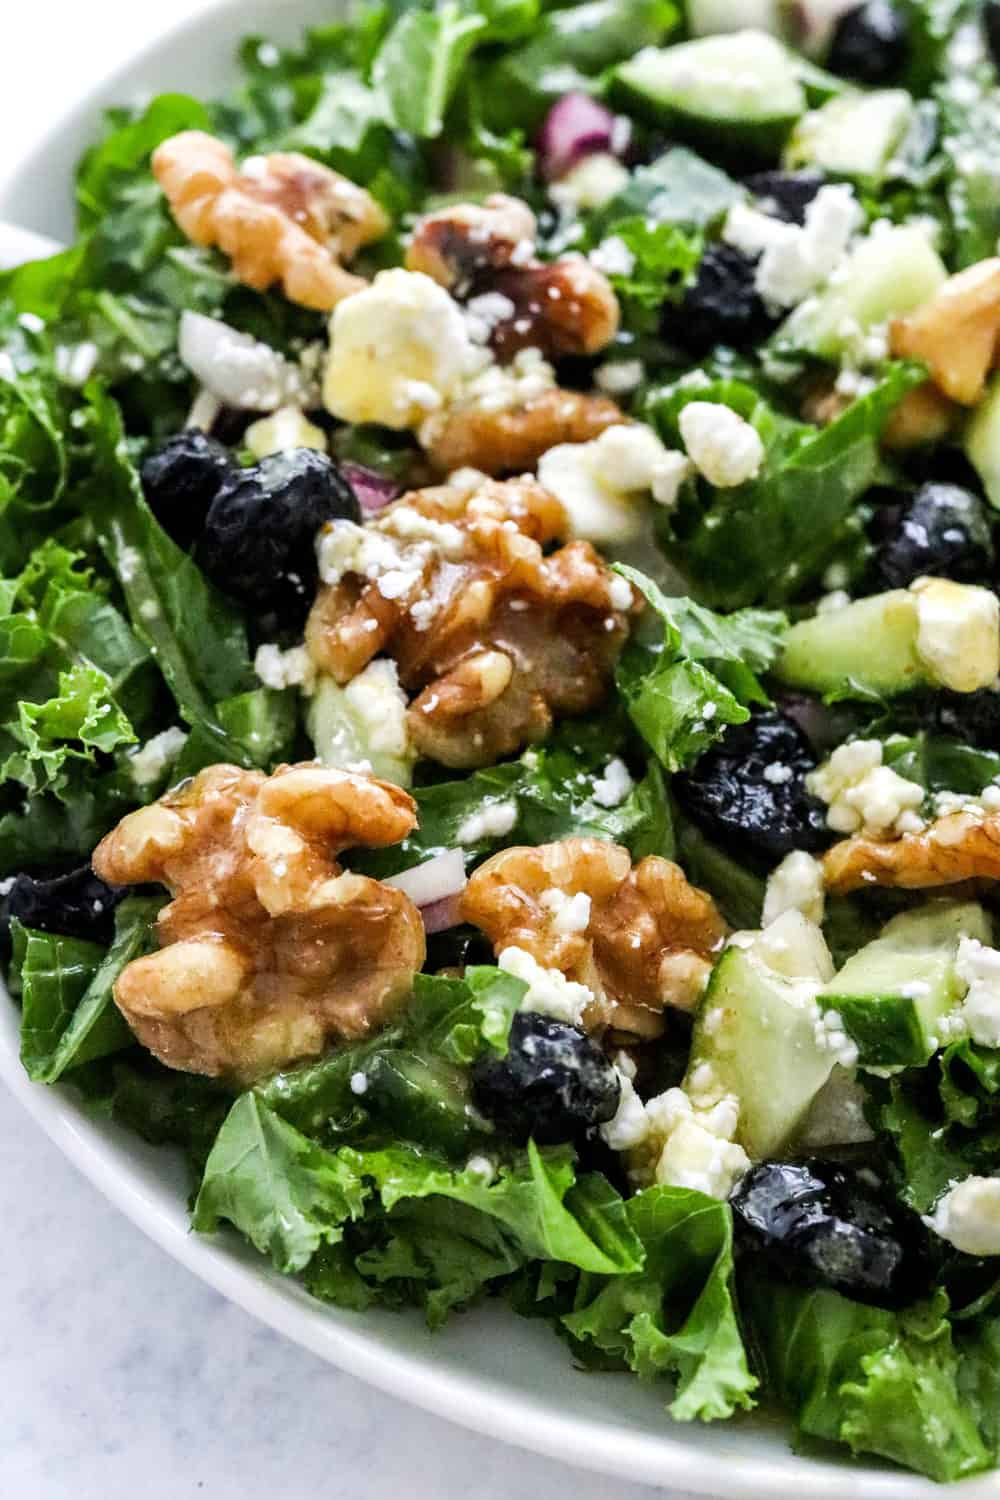 Close up of chopped kale salad with creamy dressing on it with walnut and berries on the salad.